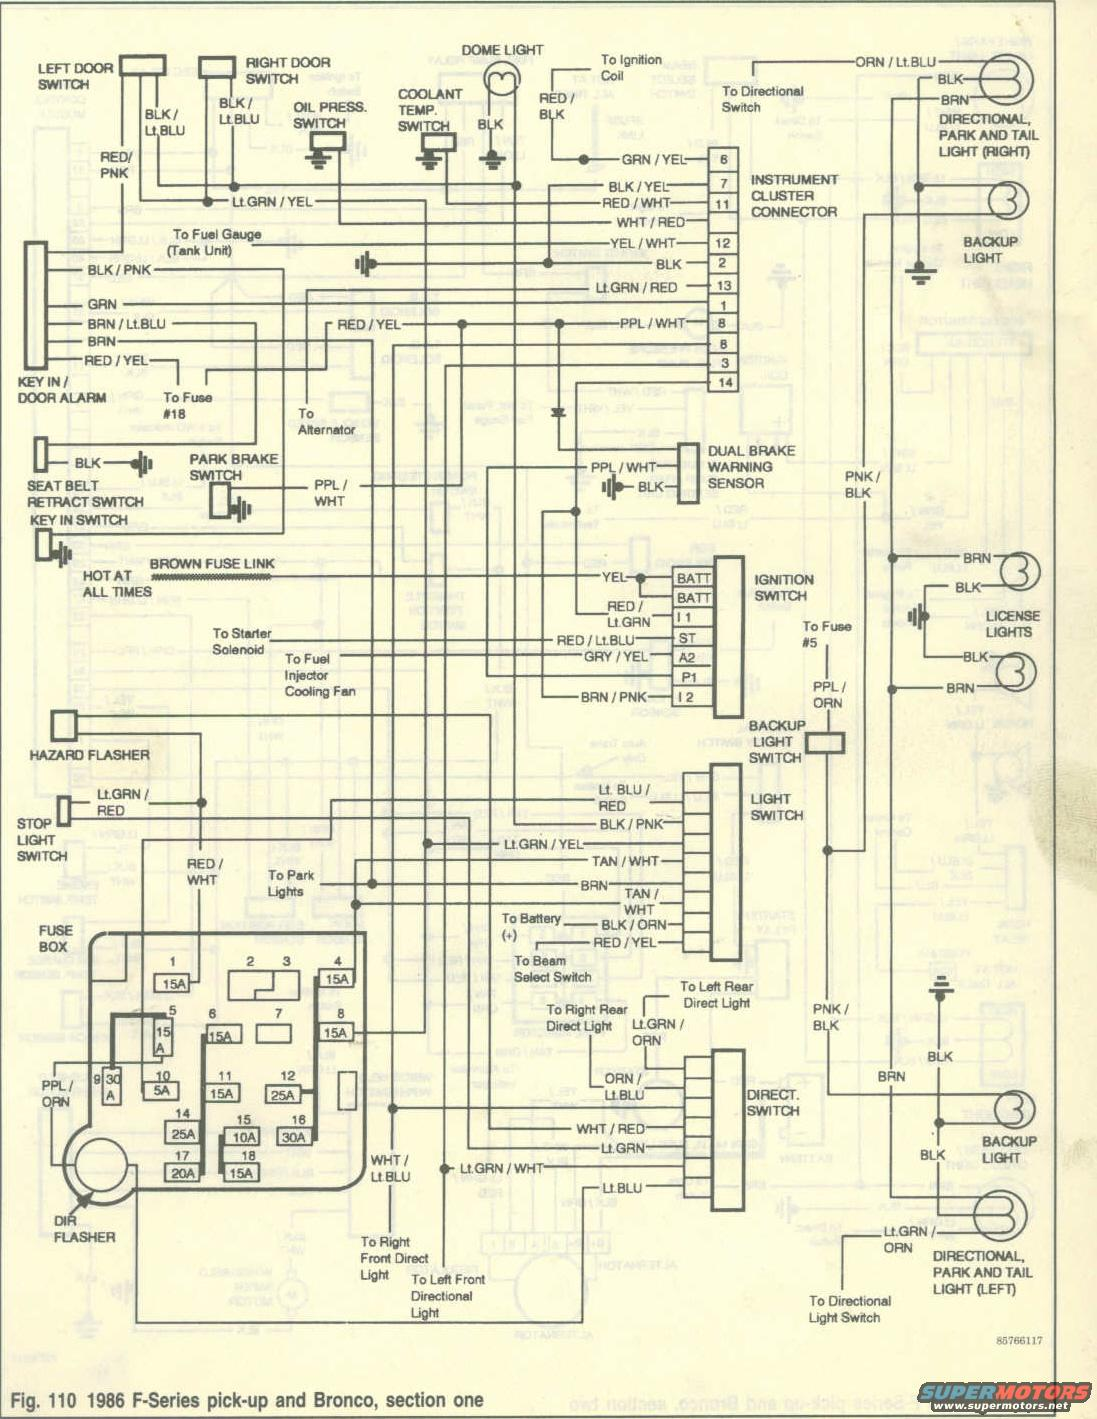 and section 1: Here is the link to my site: 1986 Ford Bronco Wiring Diagrams  ...